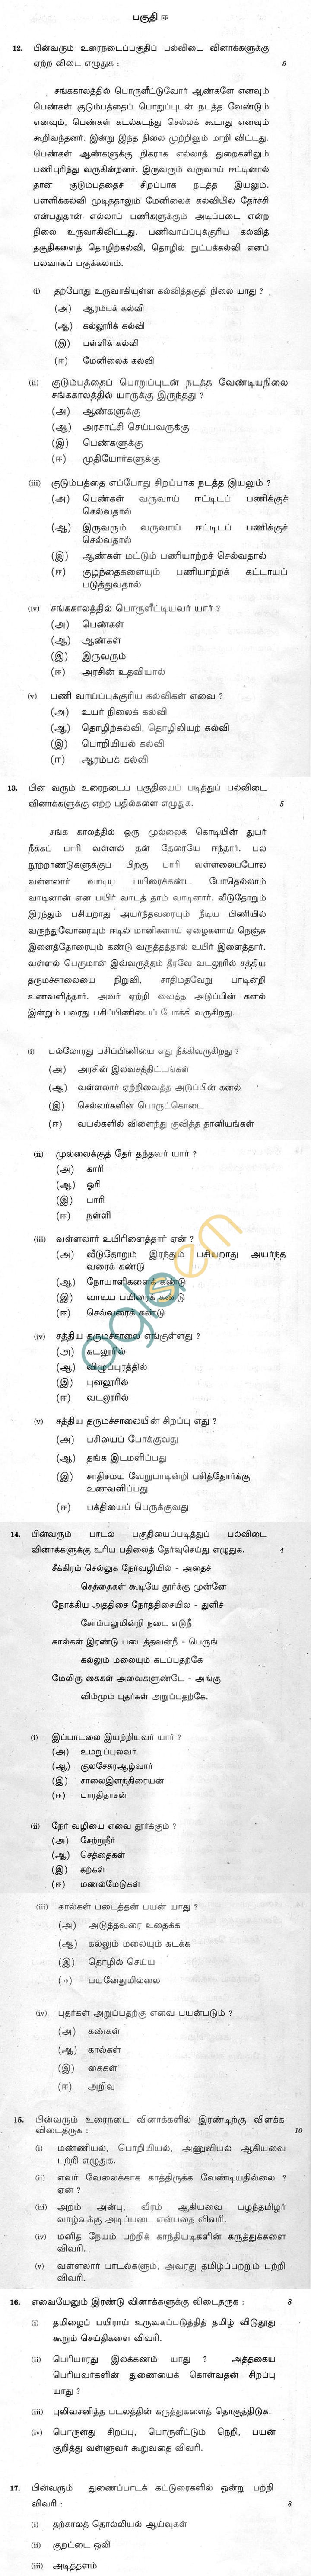 CBSE Compartment Exam 2013 Class X Question Paper - Tamil